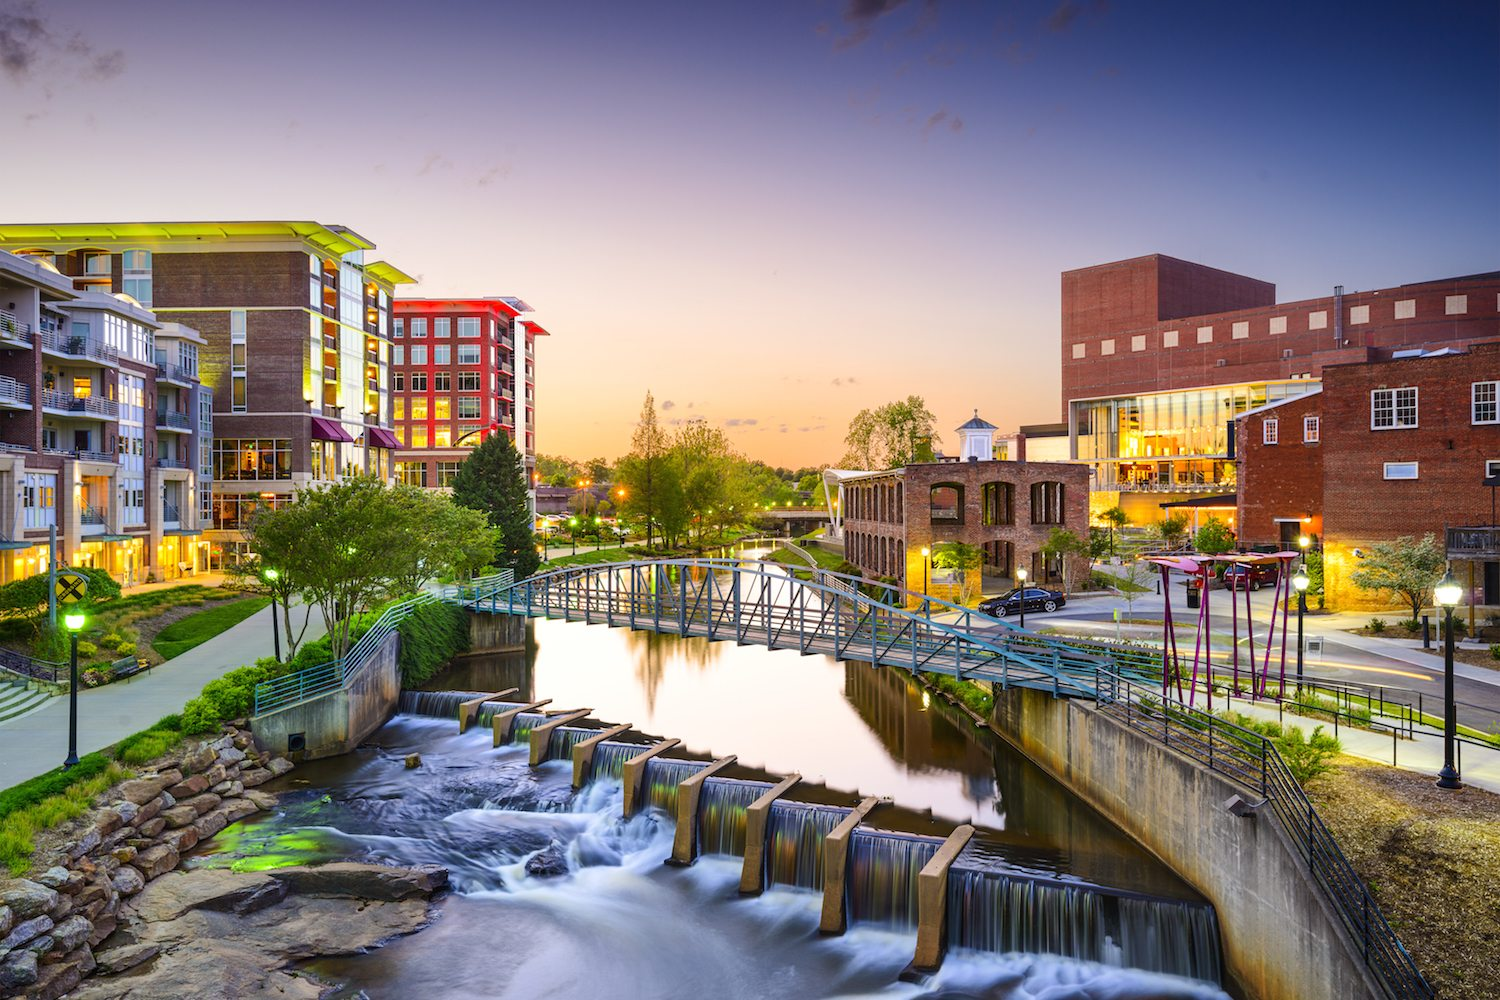 Greetings from Greenville, SC